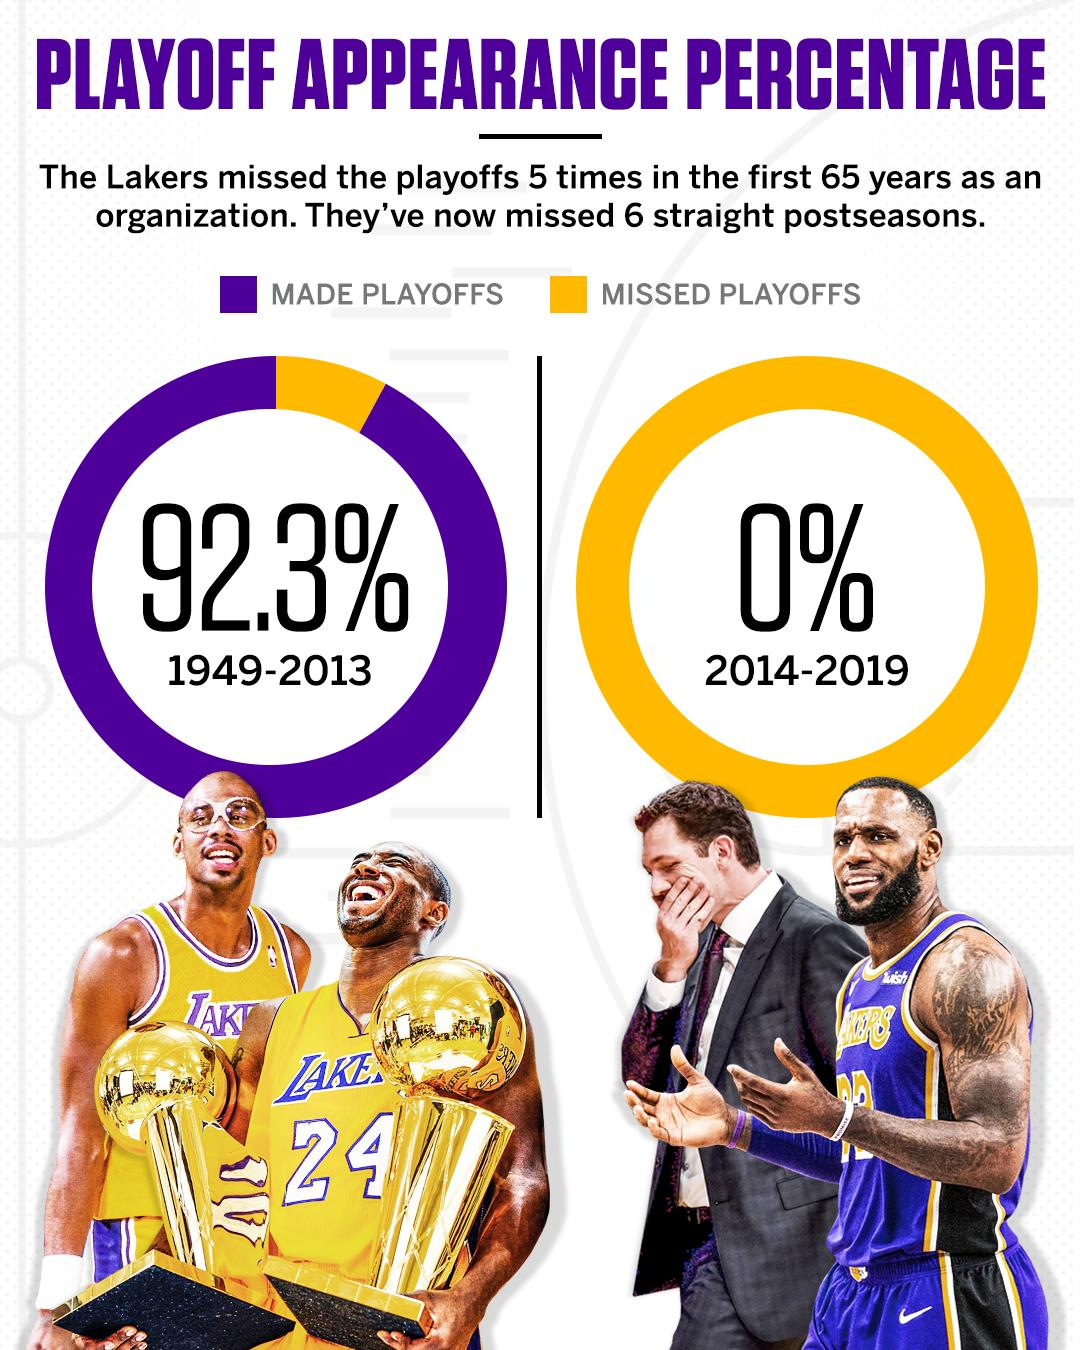 The Lakers' postseason dry spell continues. https://t.co/BfaAdx2RSV